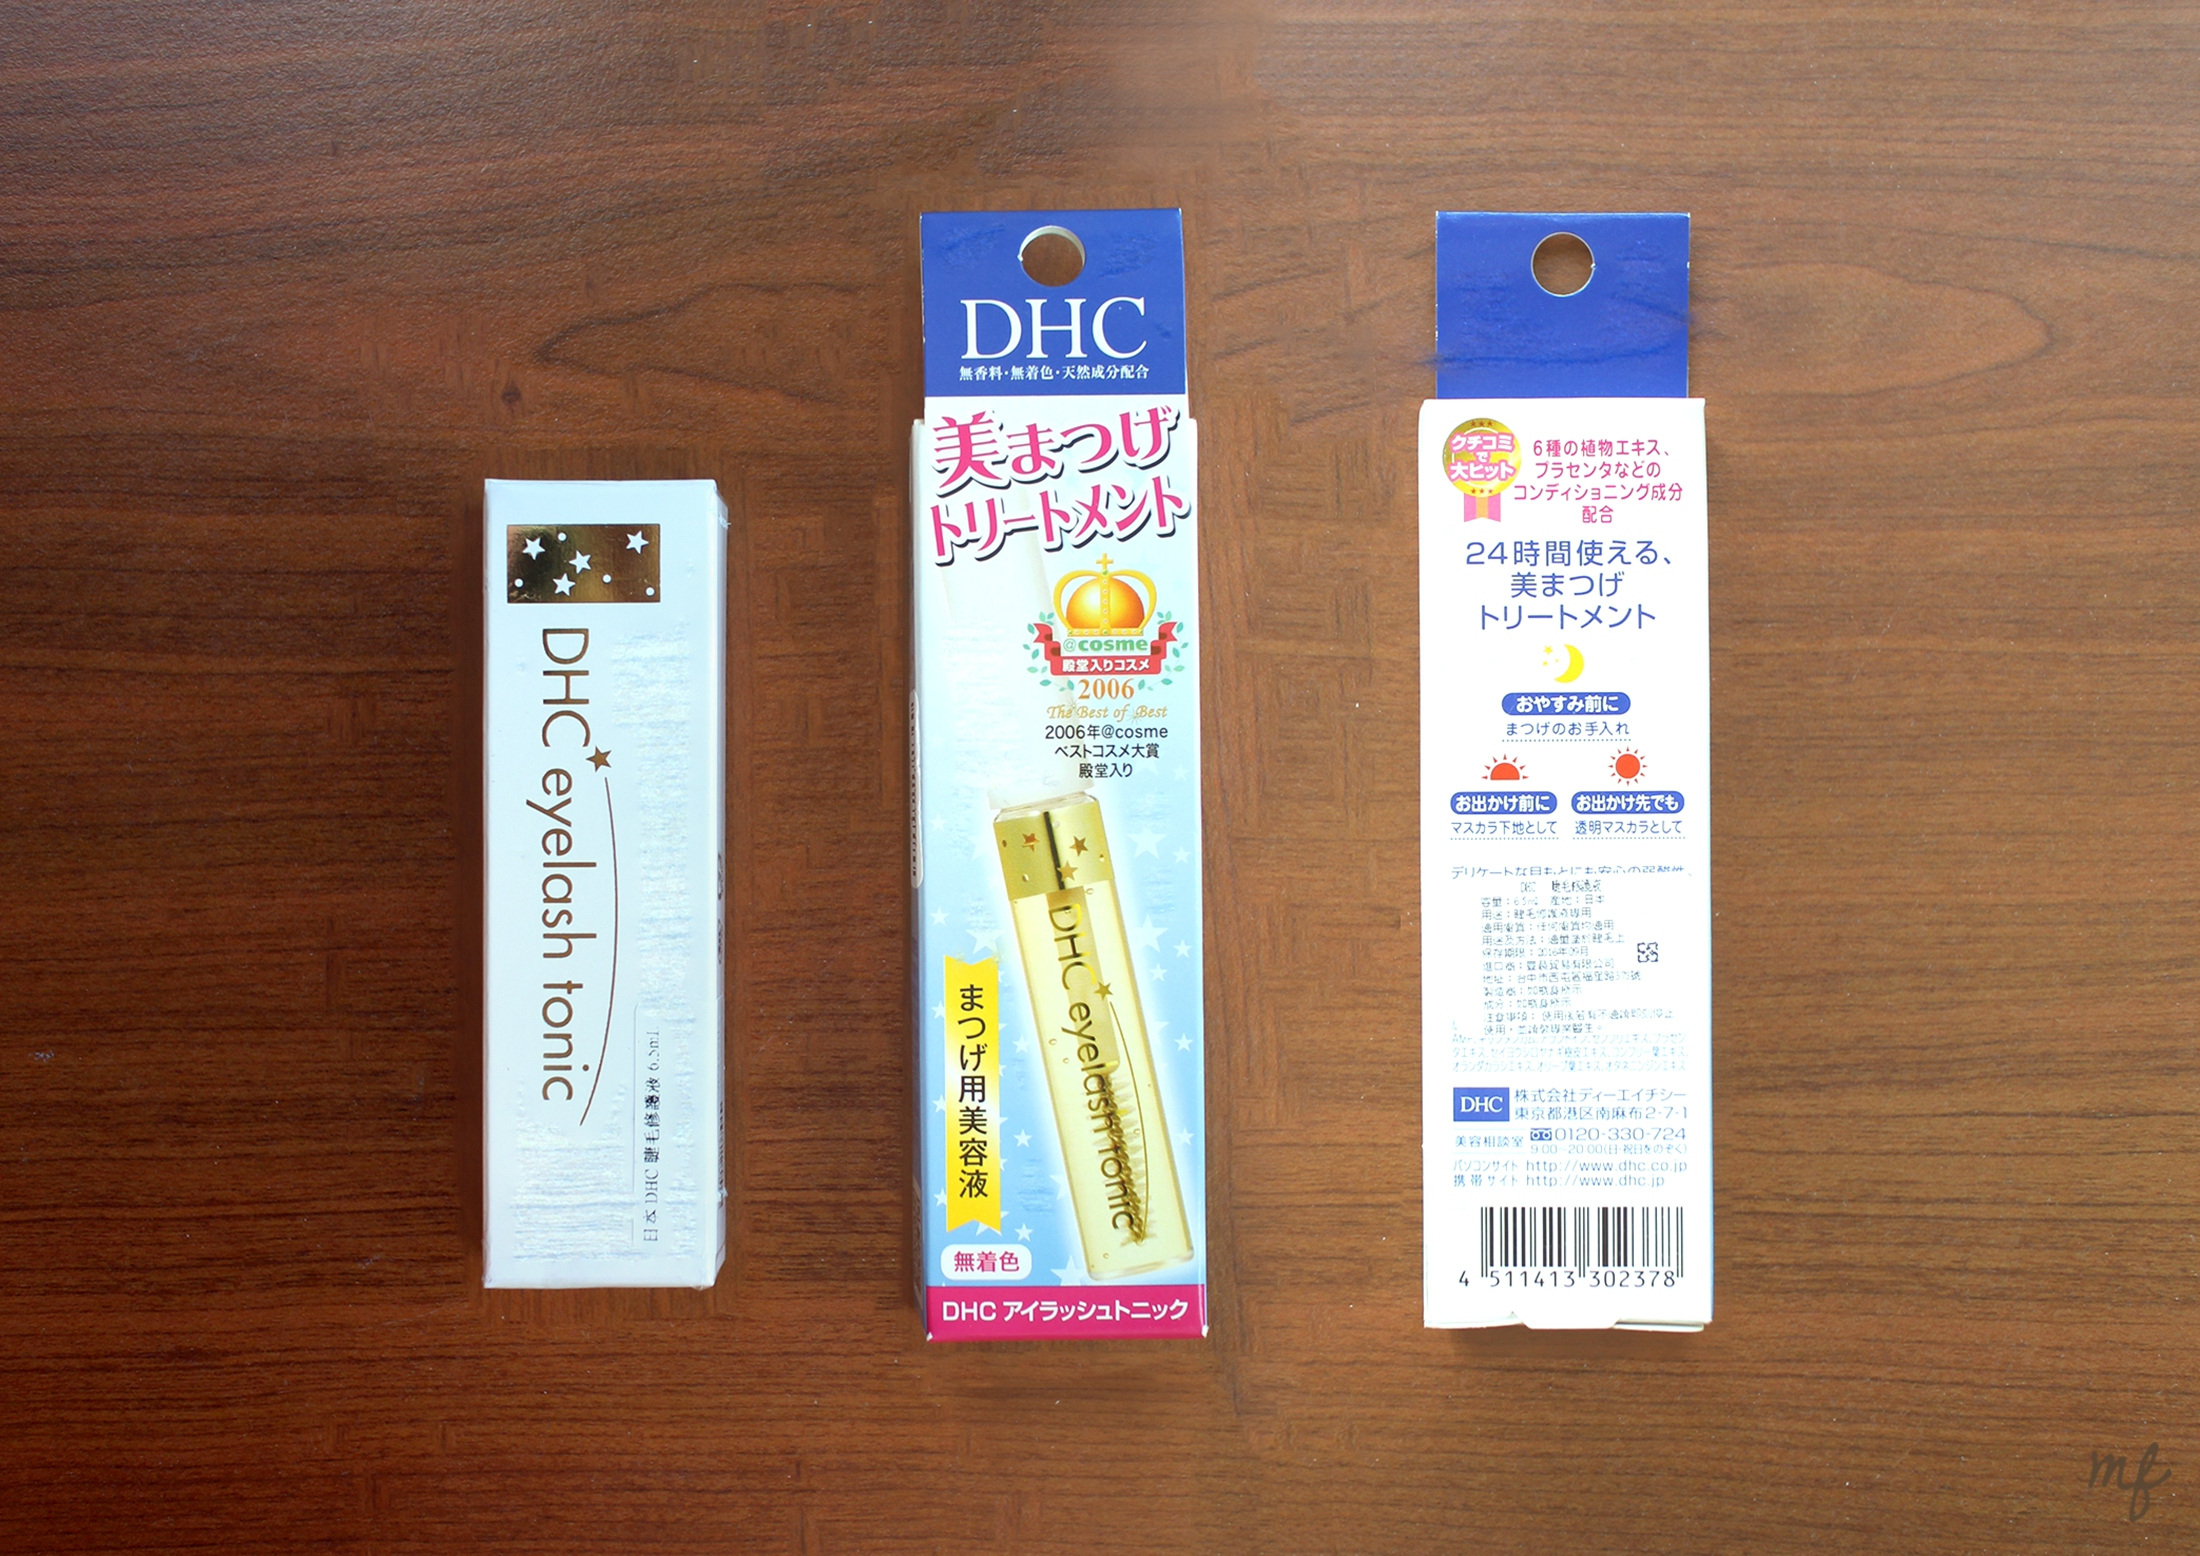 f36b0e68552 Review: DHC Eyelash Tonic   Milliefeuille